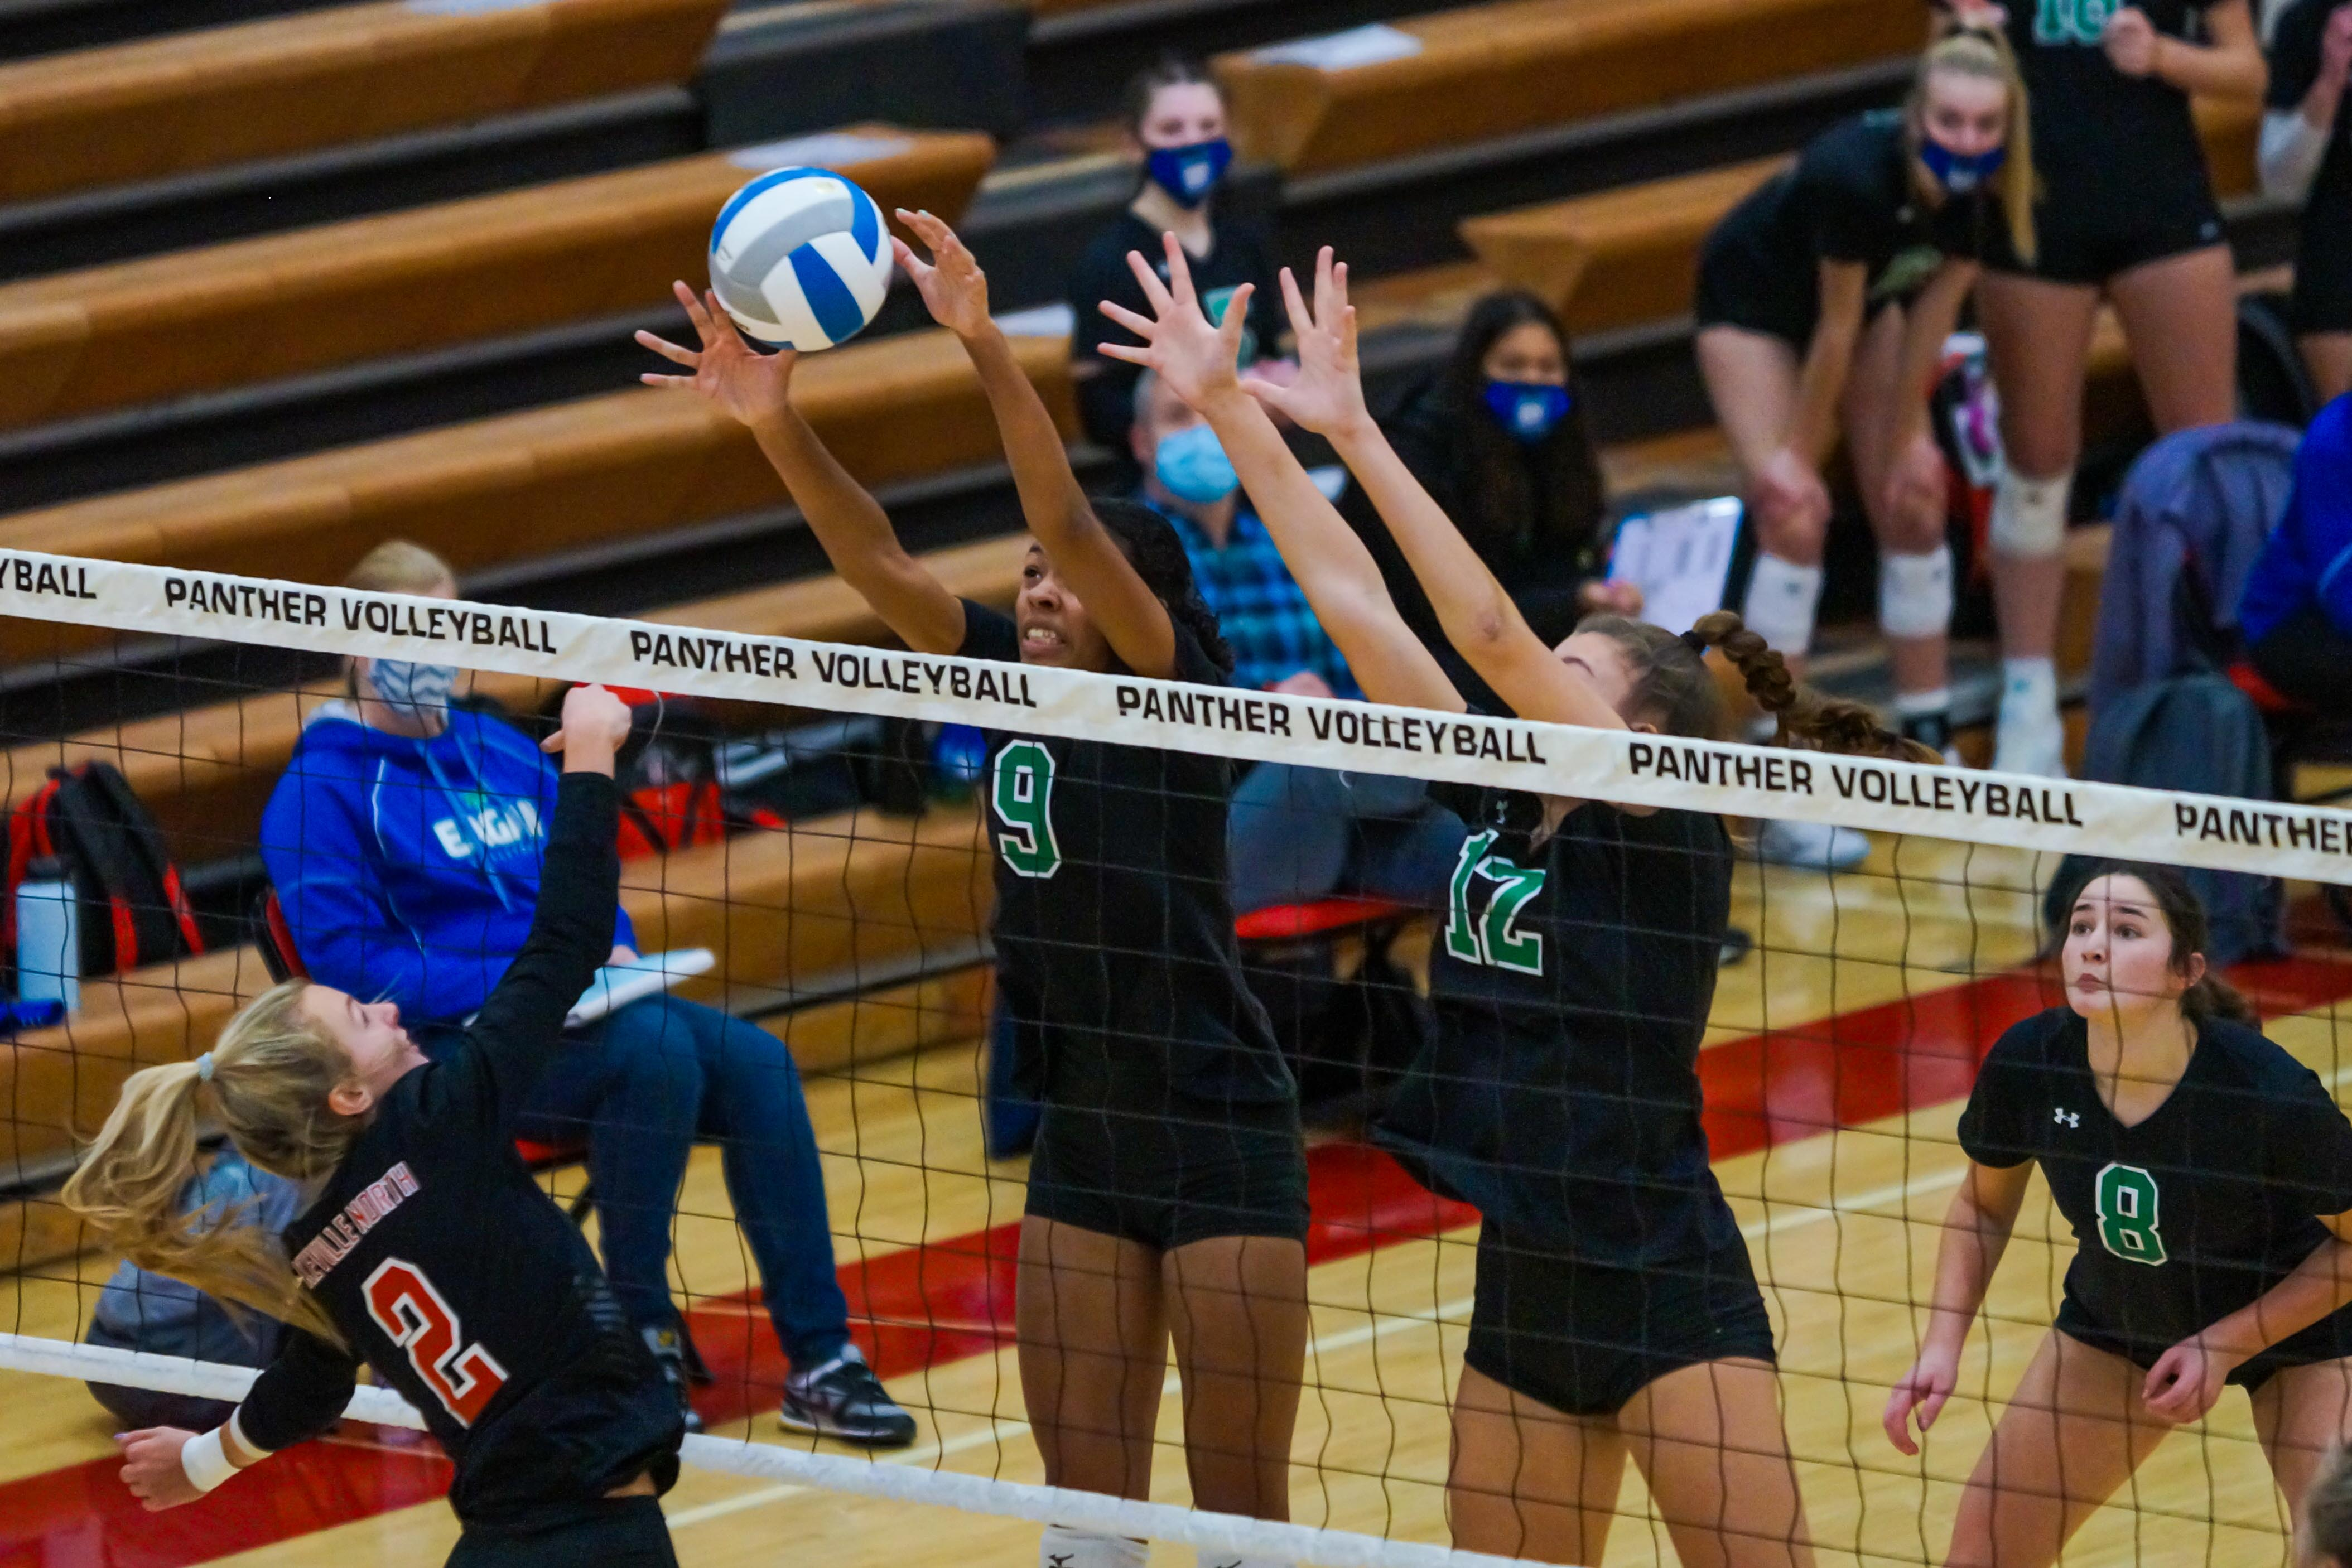 Eagan's Sienna Ifill (9) with a block on Lakeville North's Maddy Hornyak (2) during their match Nov. 19. Ifil had 12 kills in the Wildcats' 3-0 loss to Lakeville North on Thursday. Photo by Korey McDermott, SportsEngine